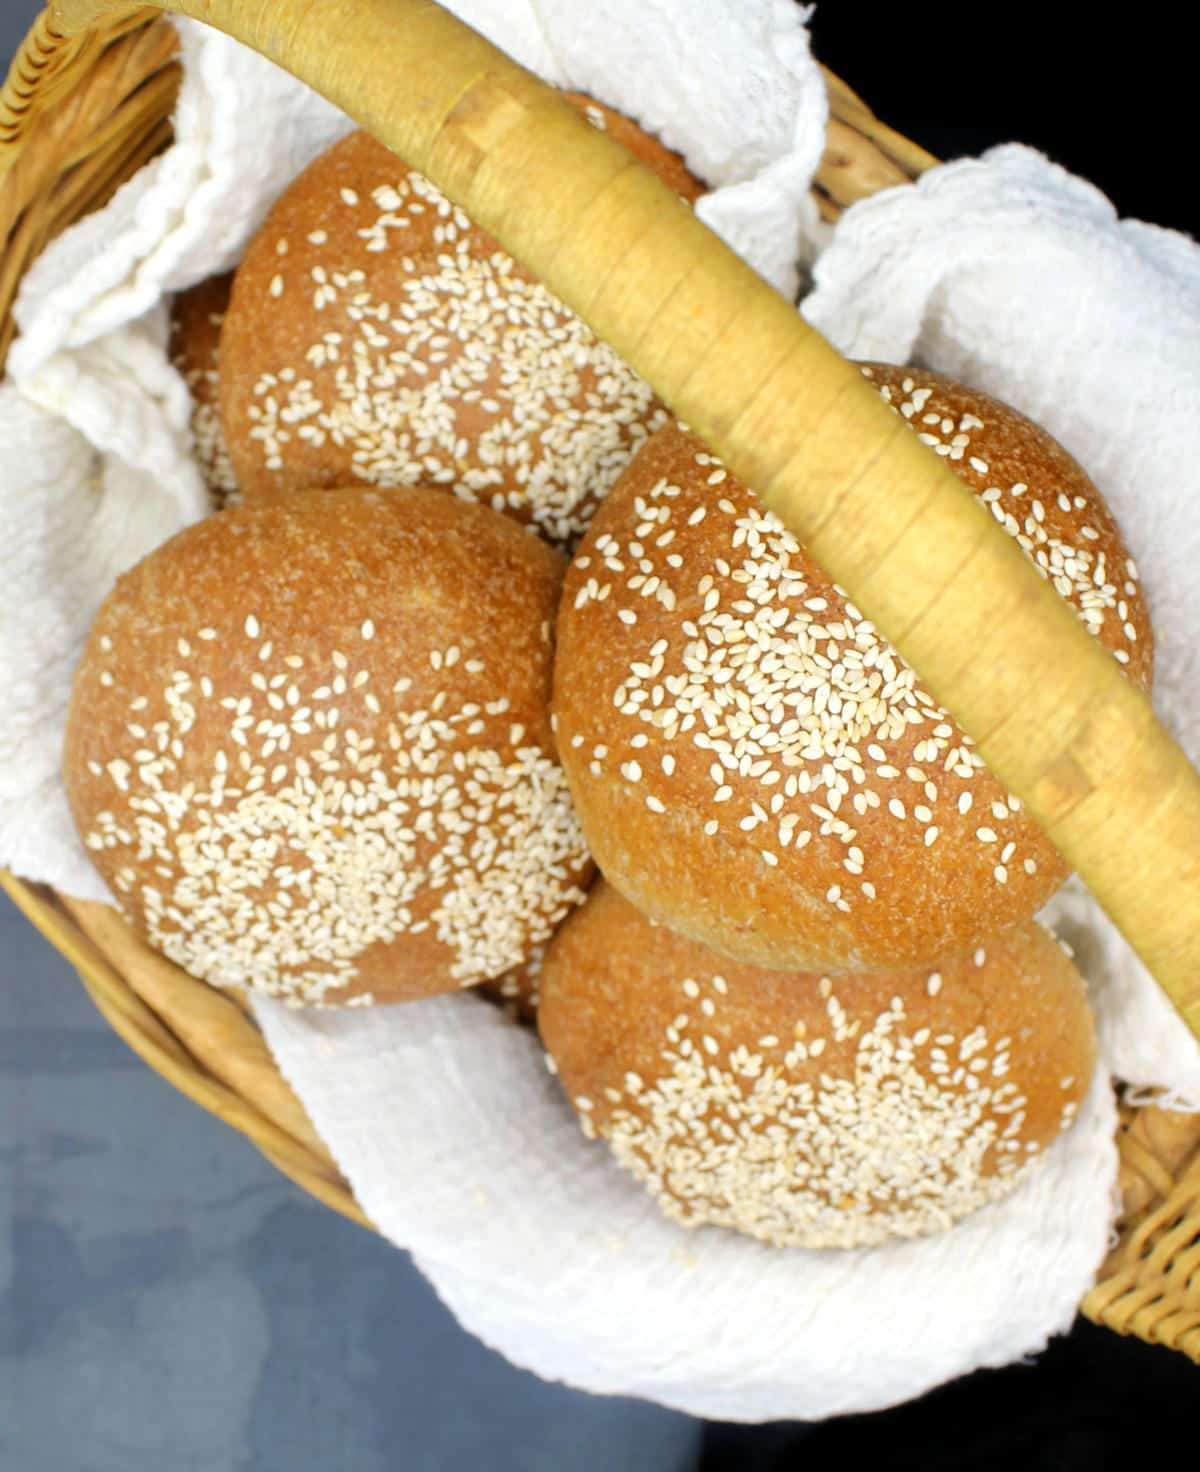 Overhead photo of whole wheat hamburger buns nestled in cheesecloth in basket.